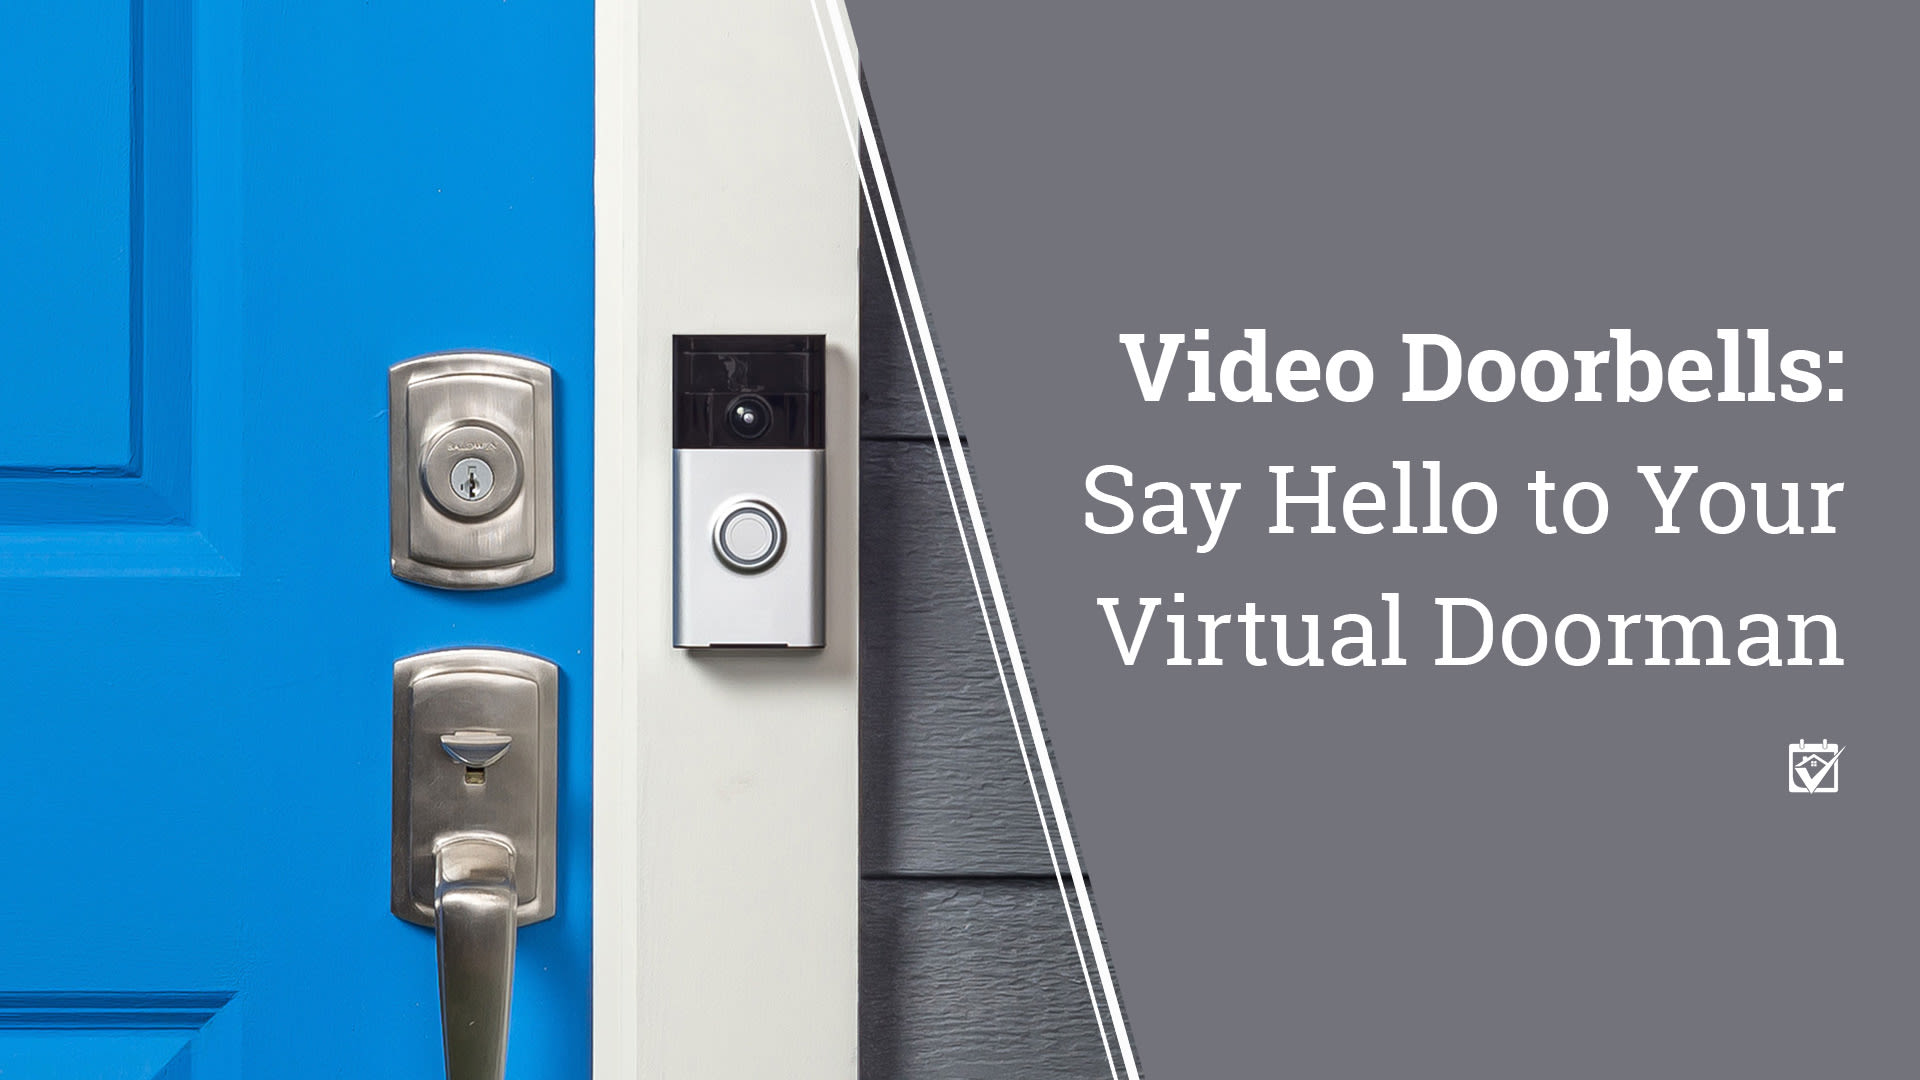 Video Doorbells.  Your own personal doorman